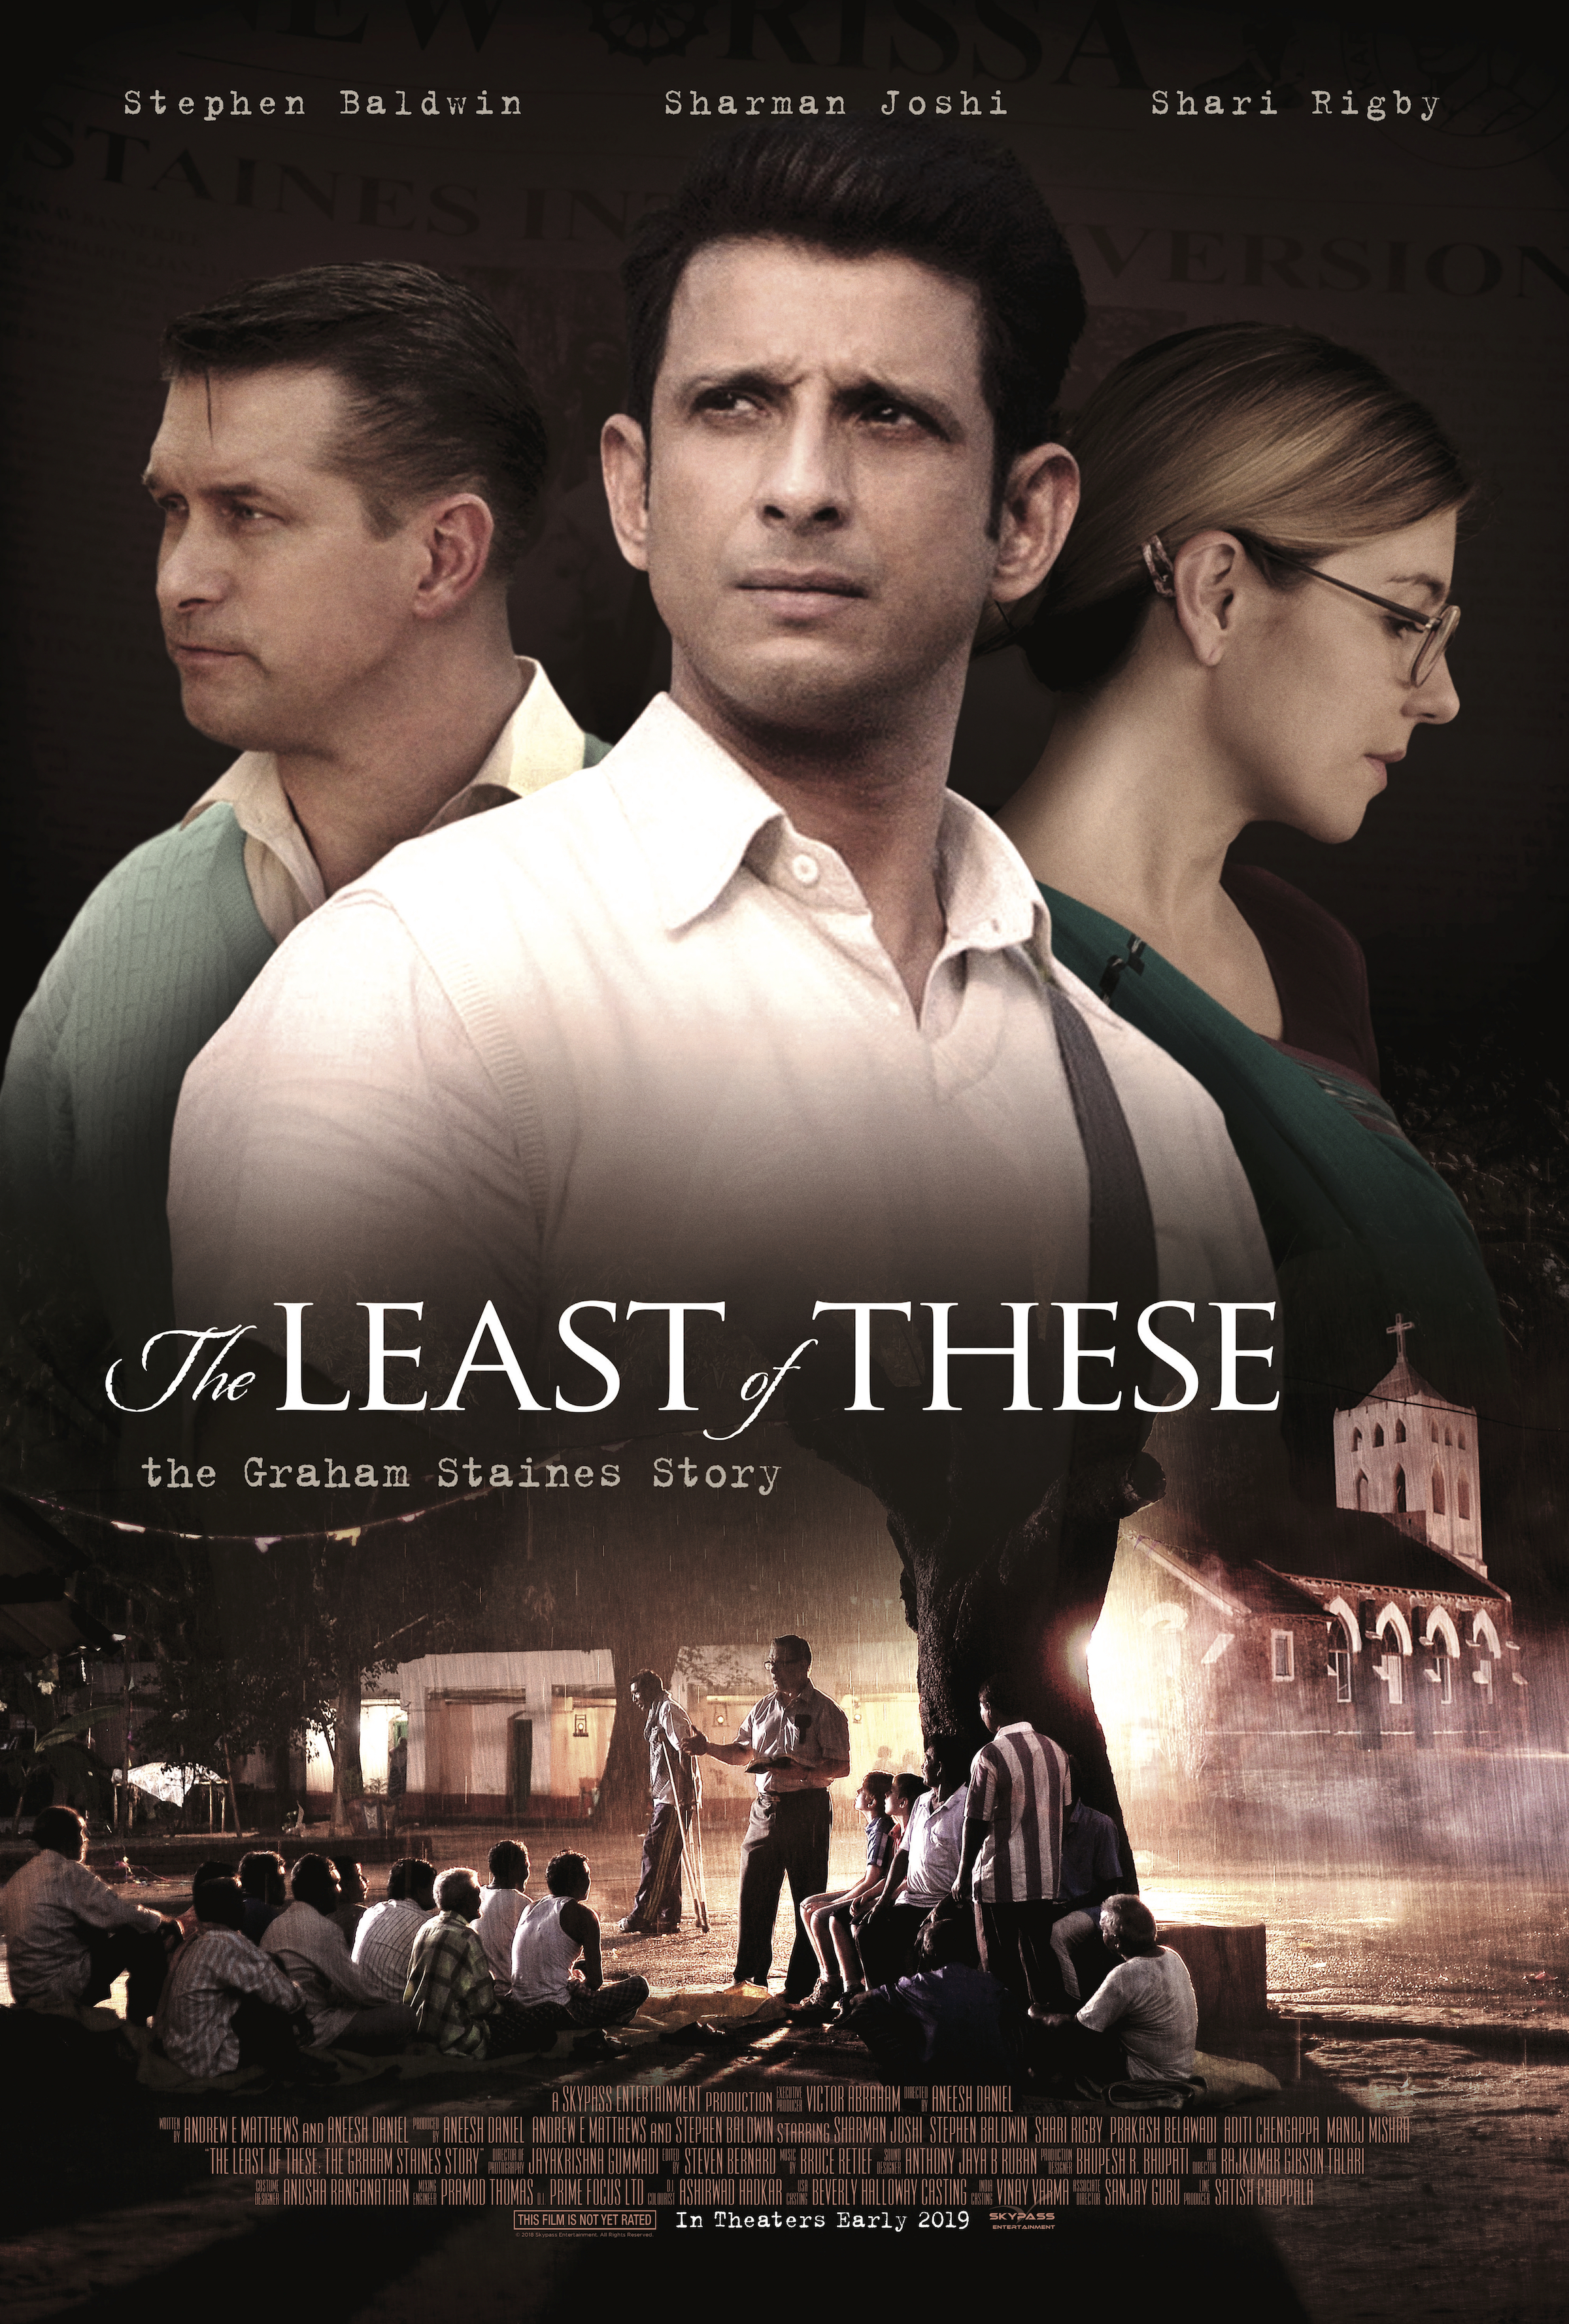 The Least of These: The Graham Staines Story (2019) - IMDb